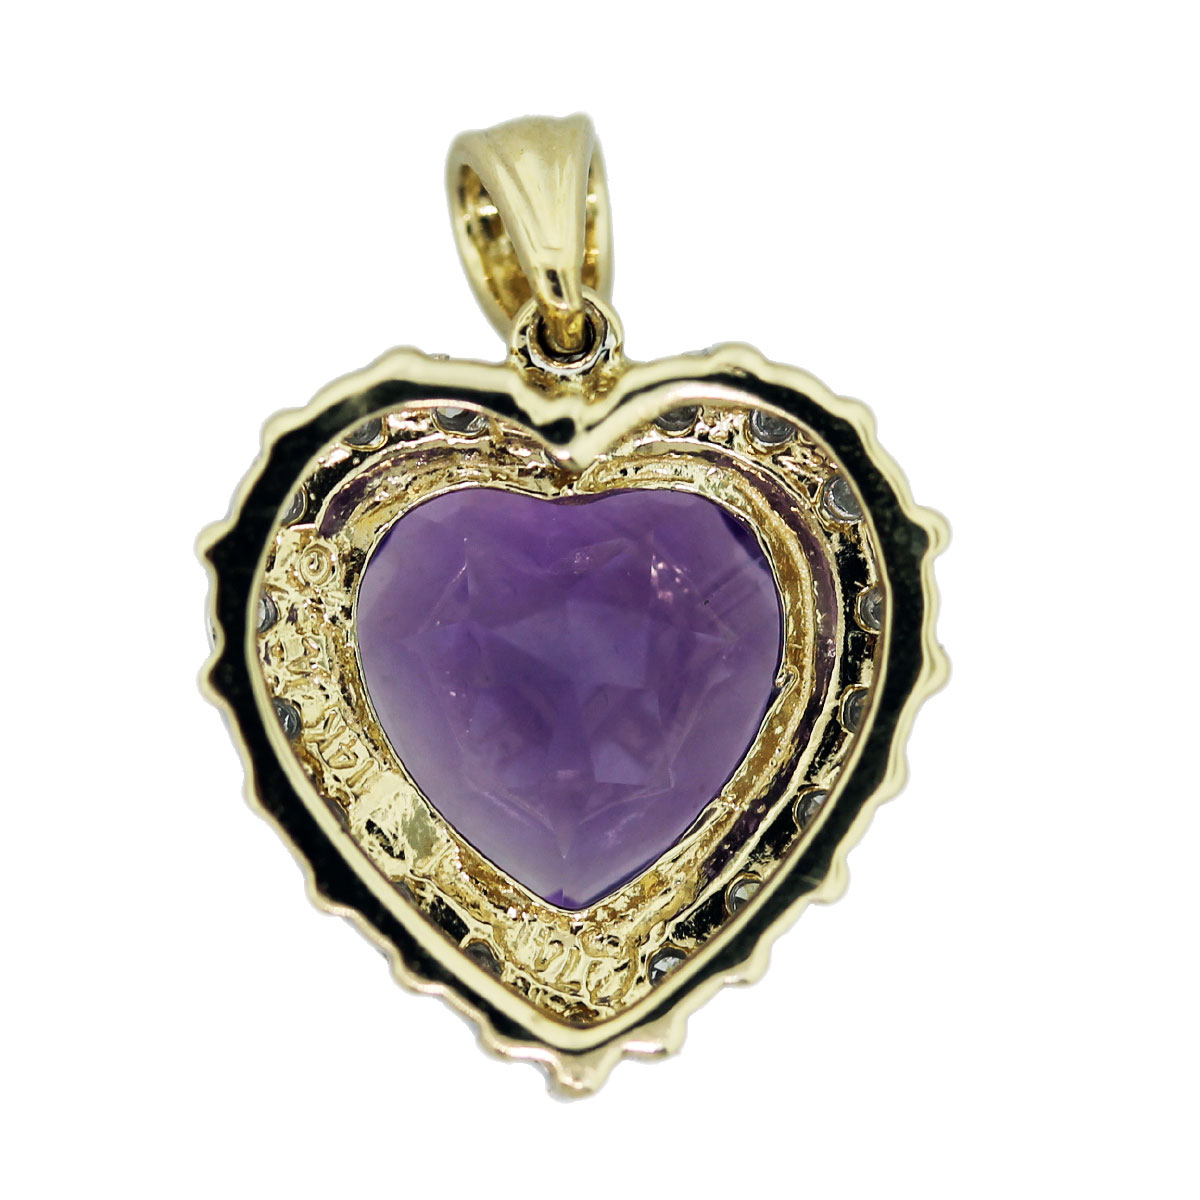 Gallery View of Amethyst Heart Pendant